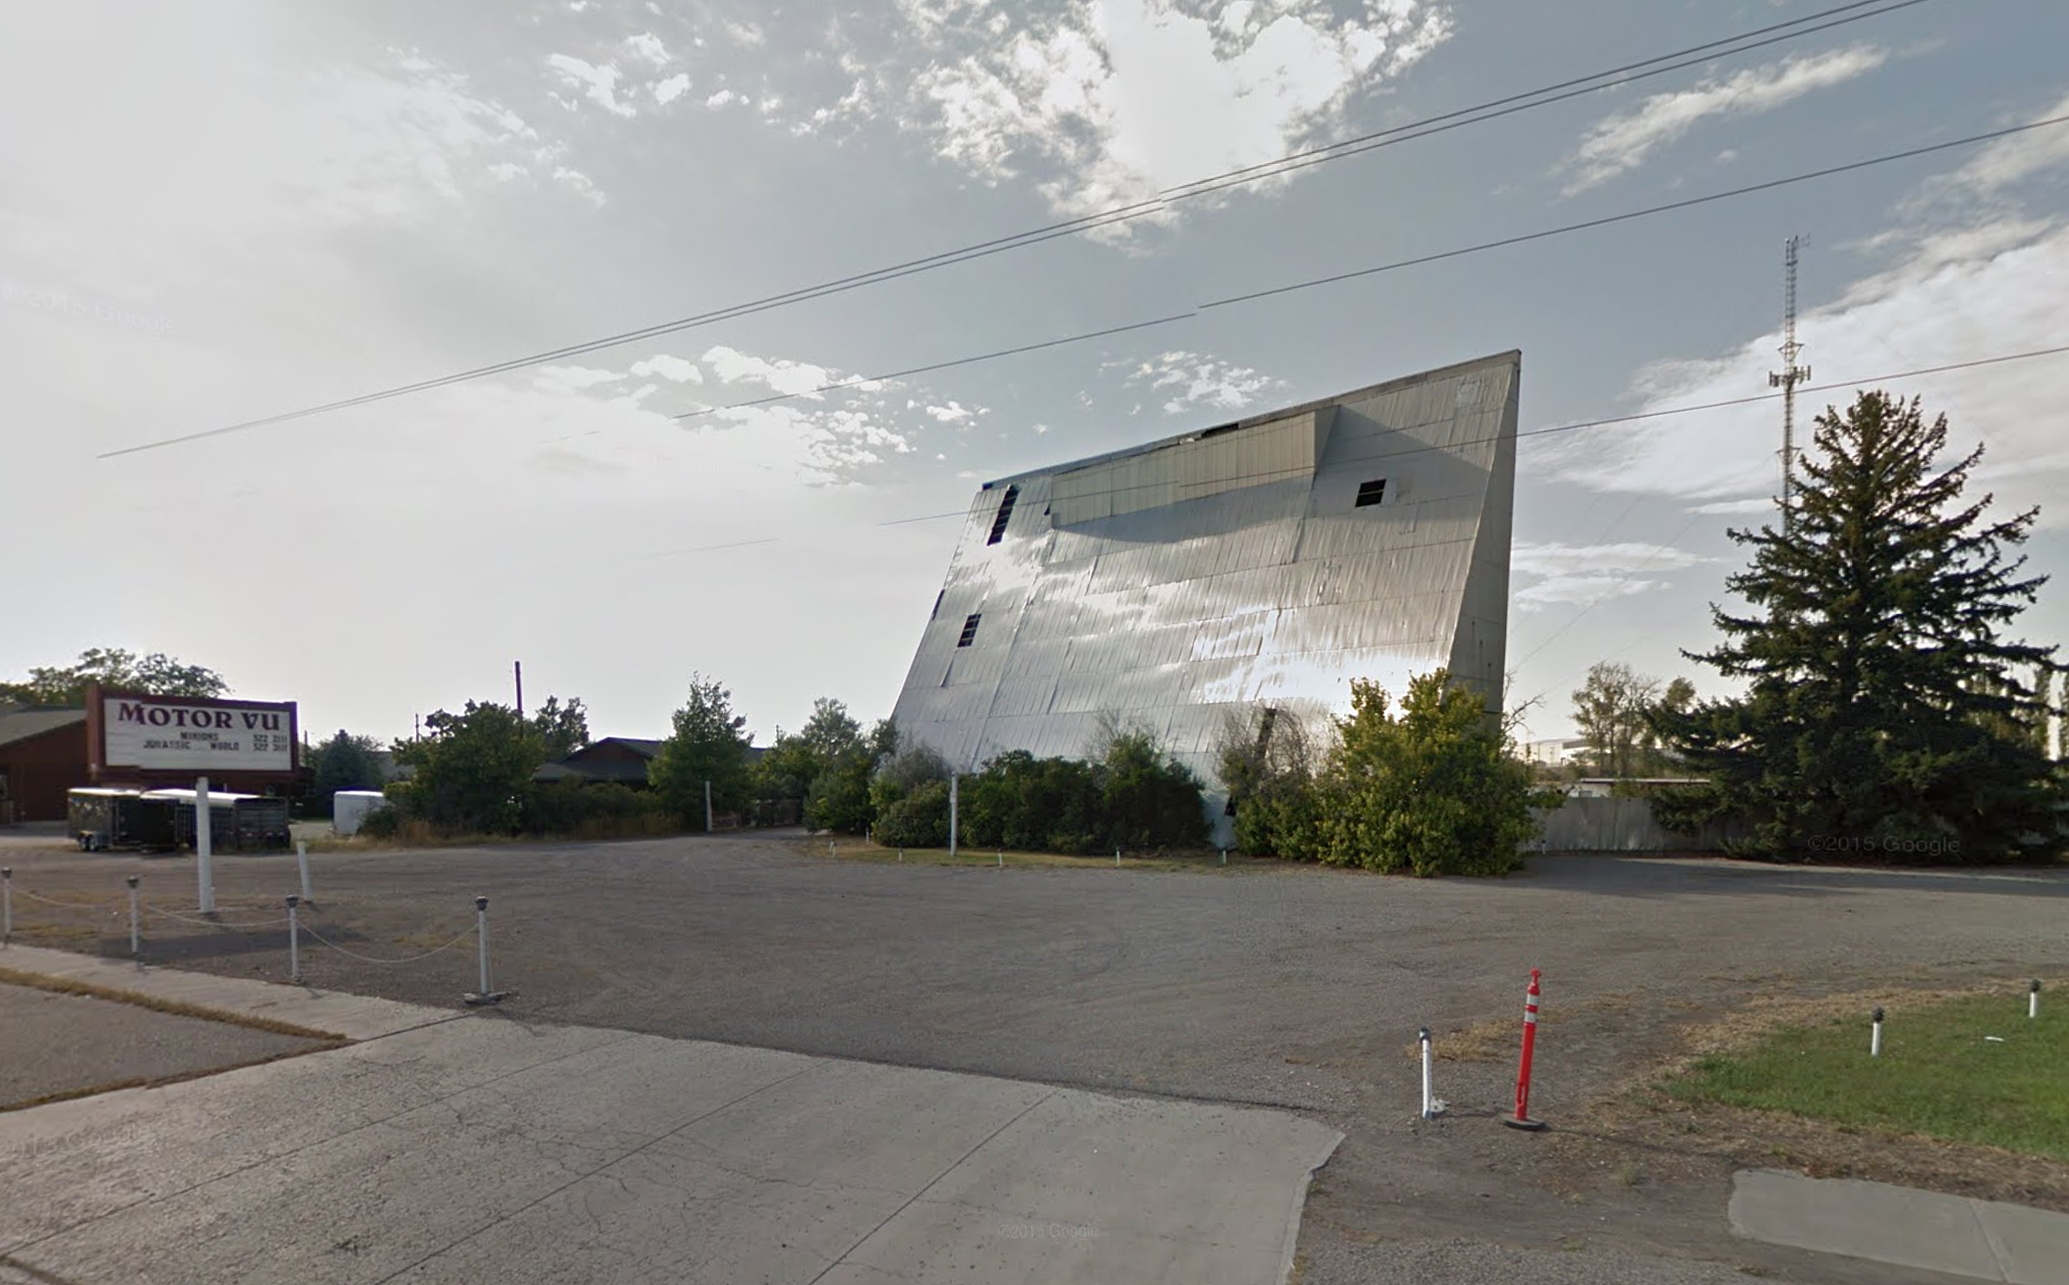 Motor view drive in idaho falls